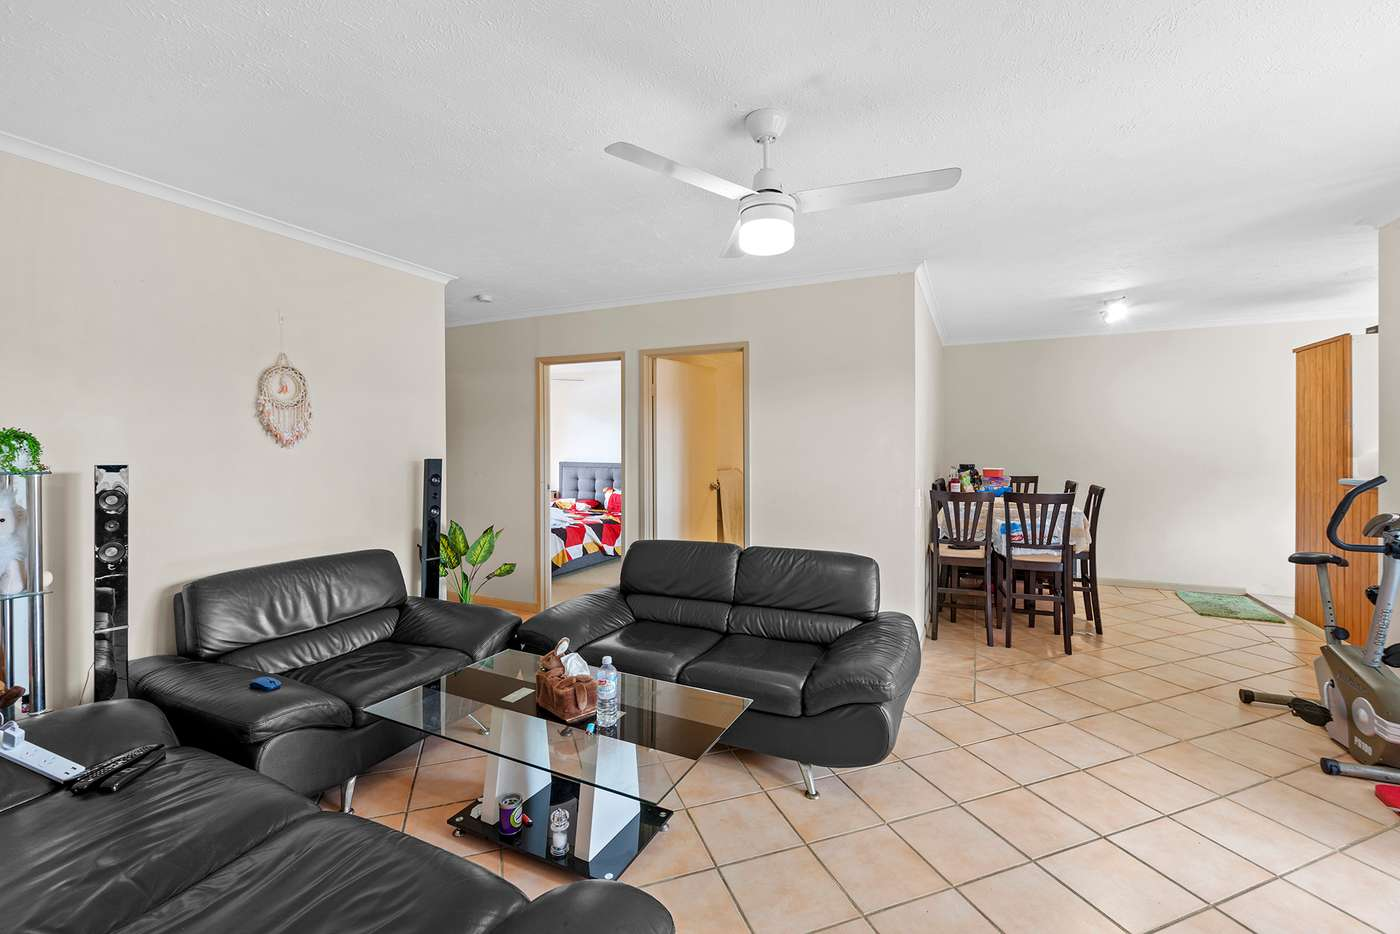 Main view of Homely apartment listing, 8/13 Stanhill Drive, Chevron Island QLD 4217